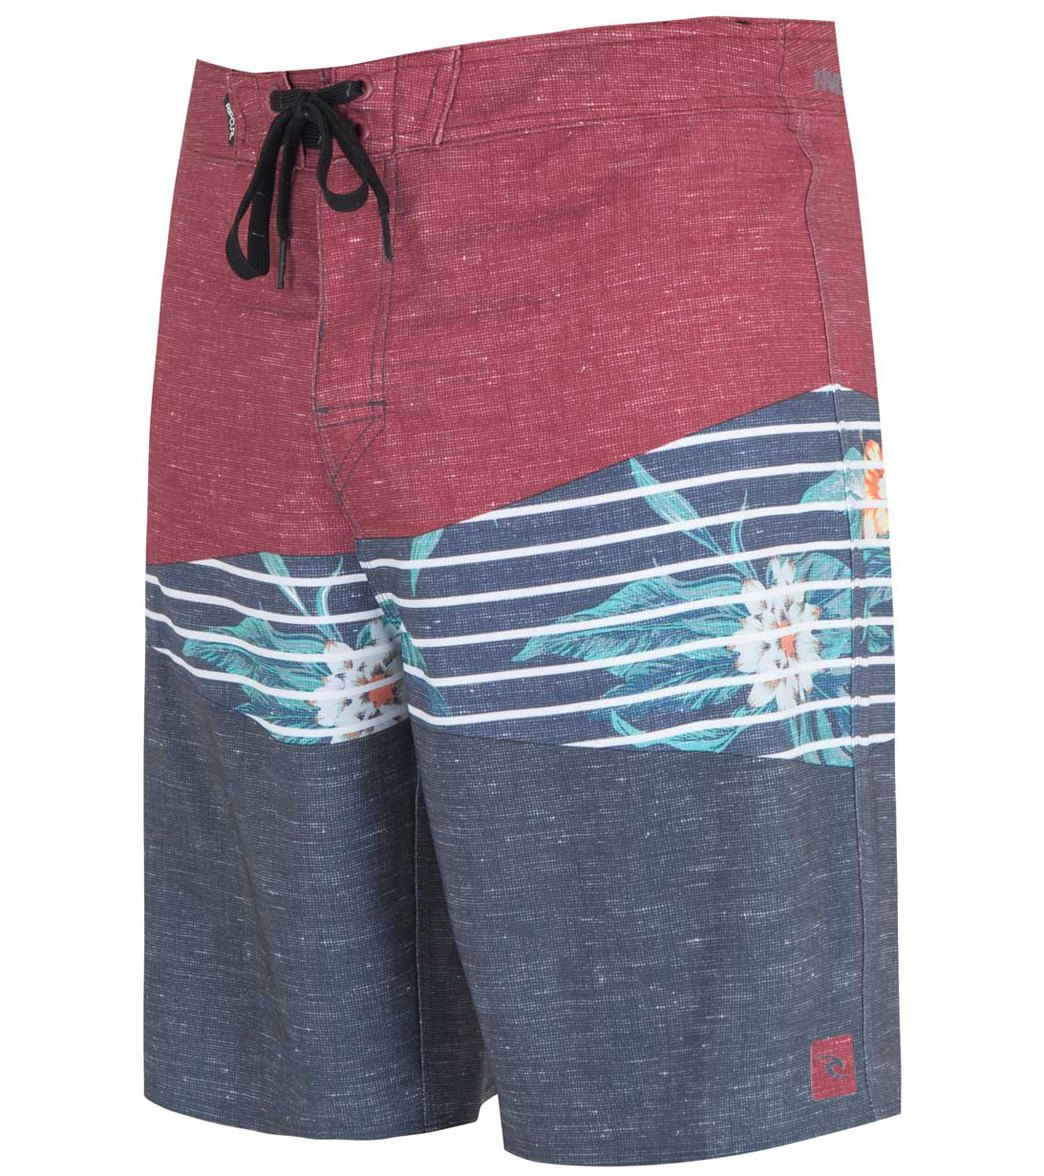 b1d7ce4ae423 Rip Curl Men's Mirage Wedge Boardshort at SwimOutlet.com - Free Shipping